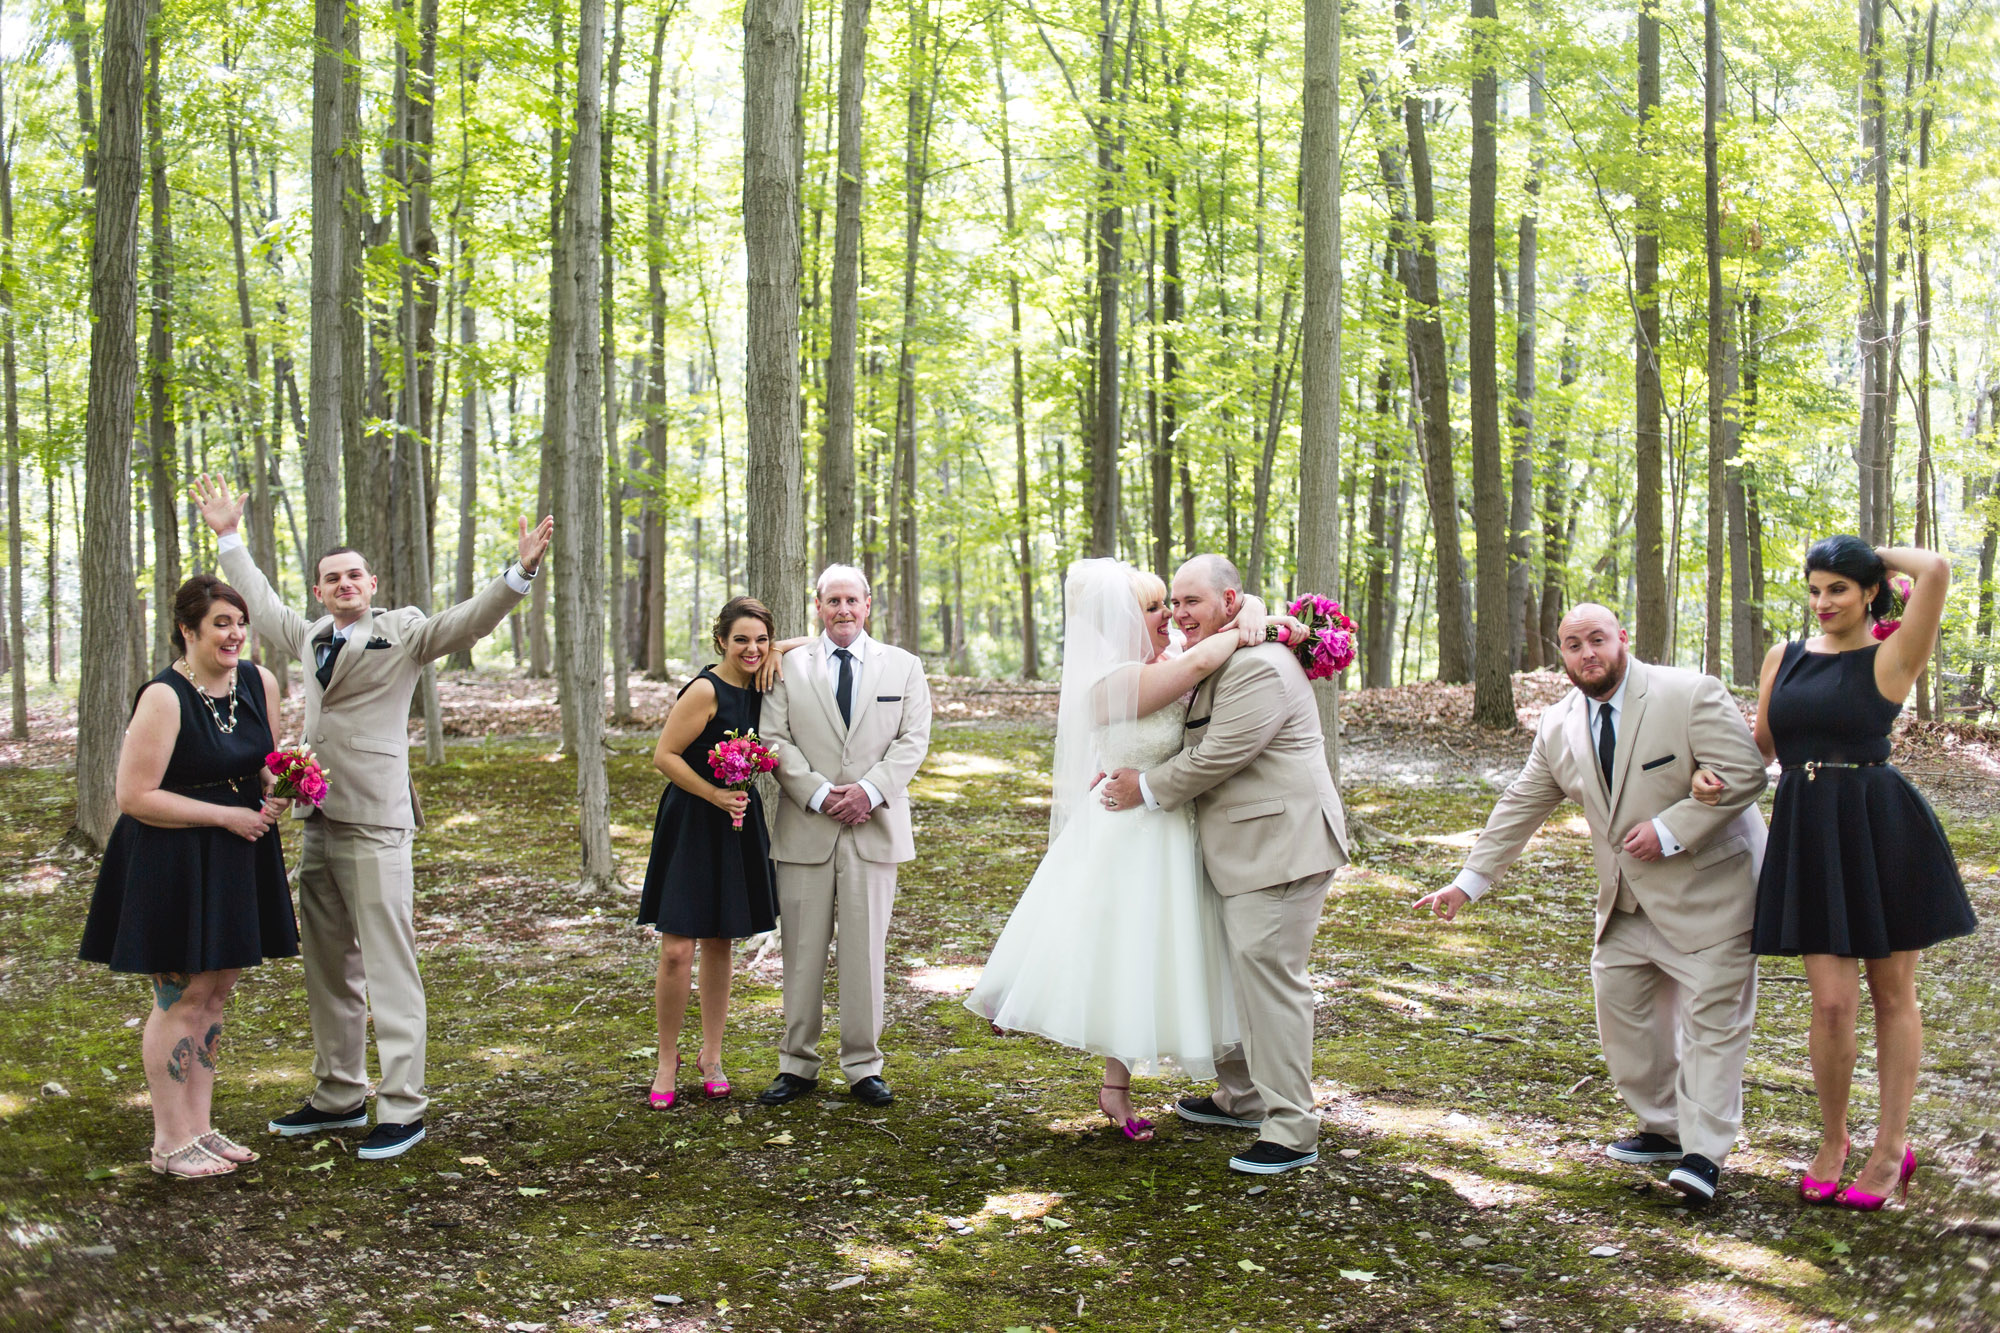 Caitlin & Joe's Stroudsmoor Woodsgate Wedding 62